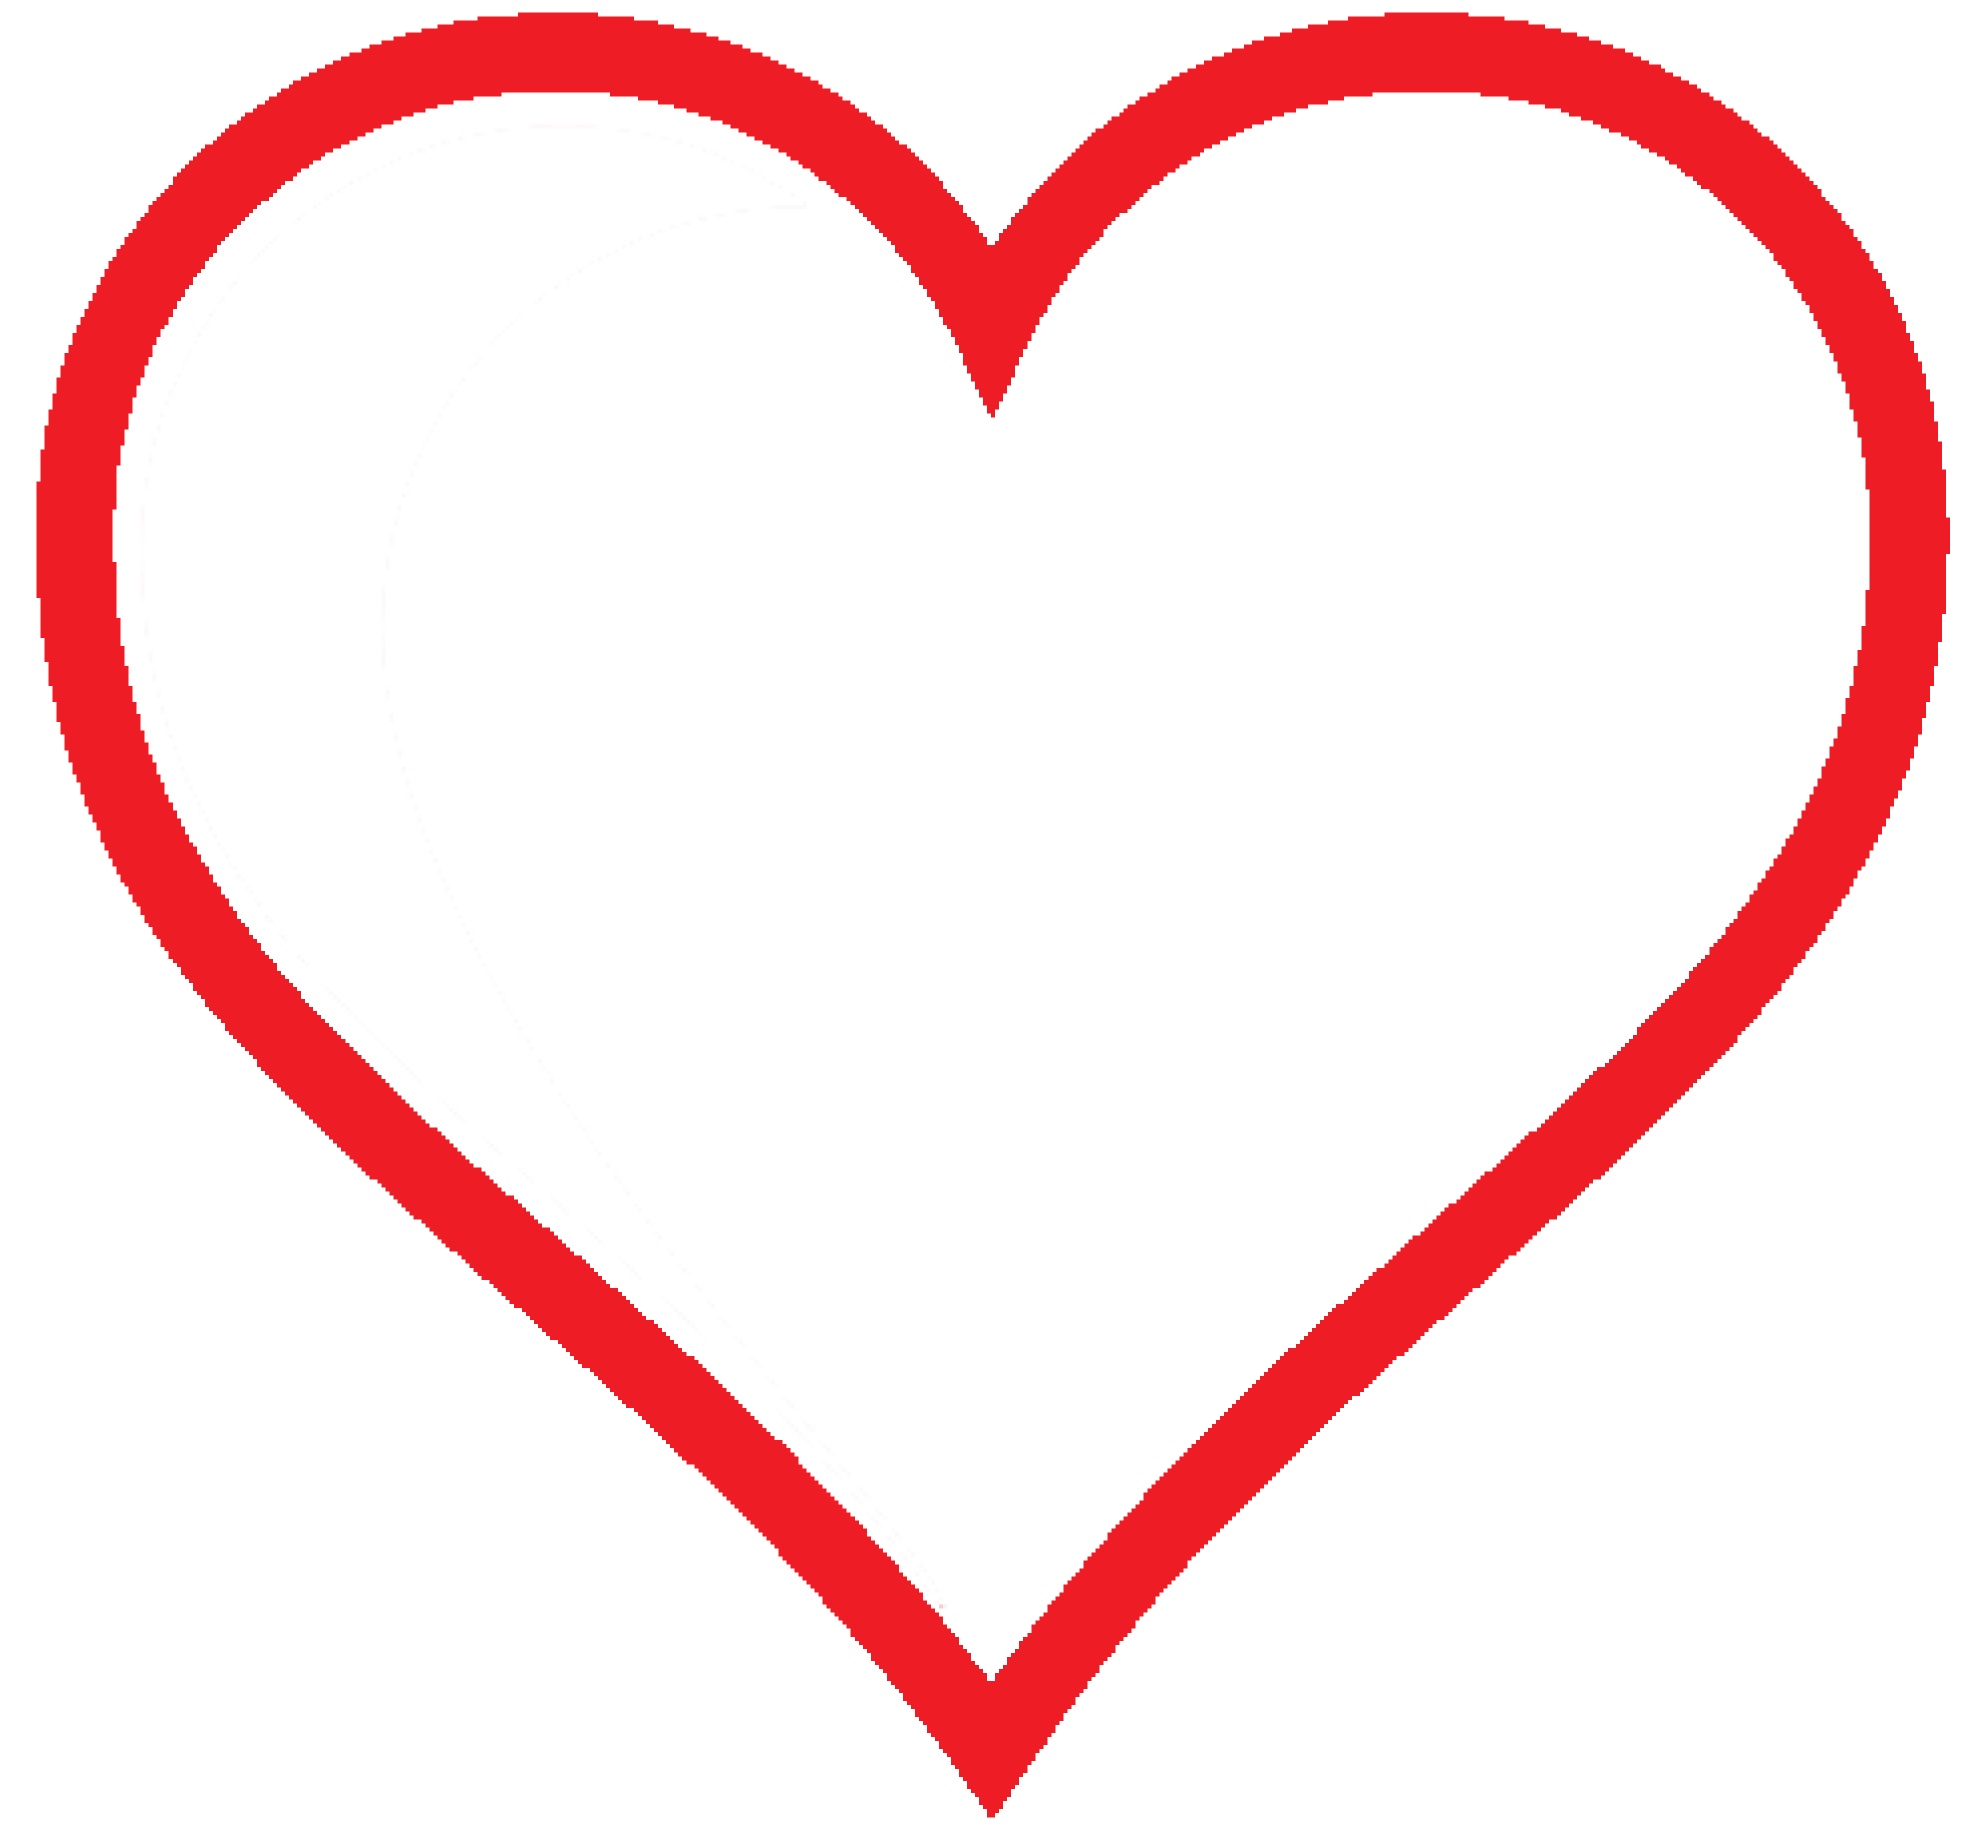 Double heart free download. Clipart hearts pencil